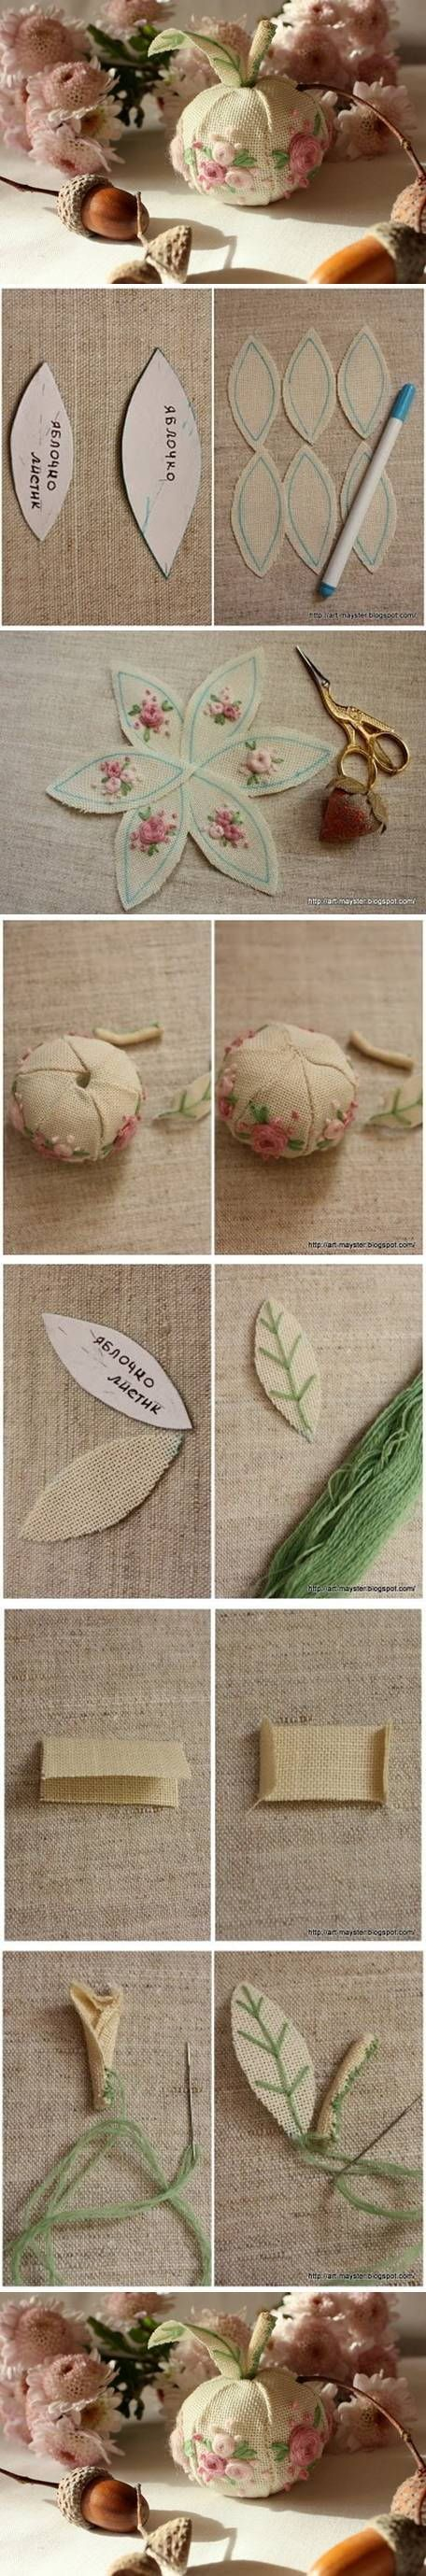 DIY Fabric Apple Decor DIY Projects | UsefulDIY.com